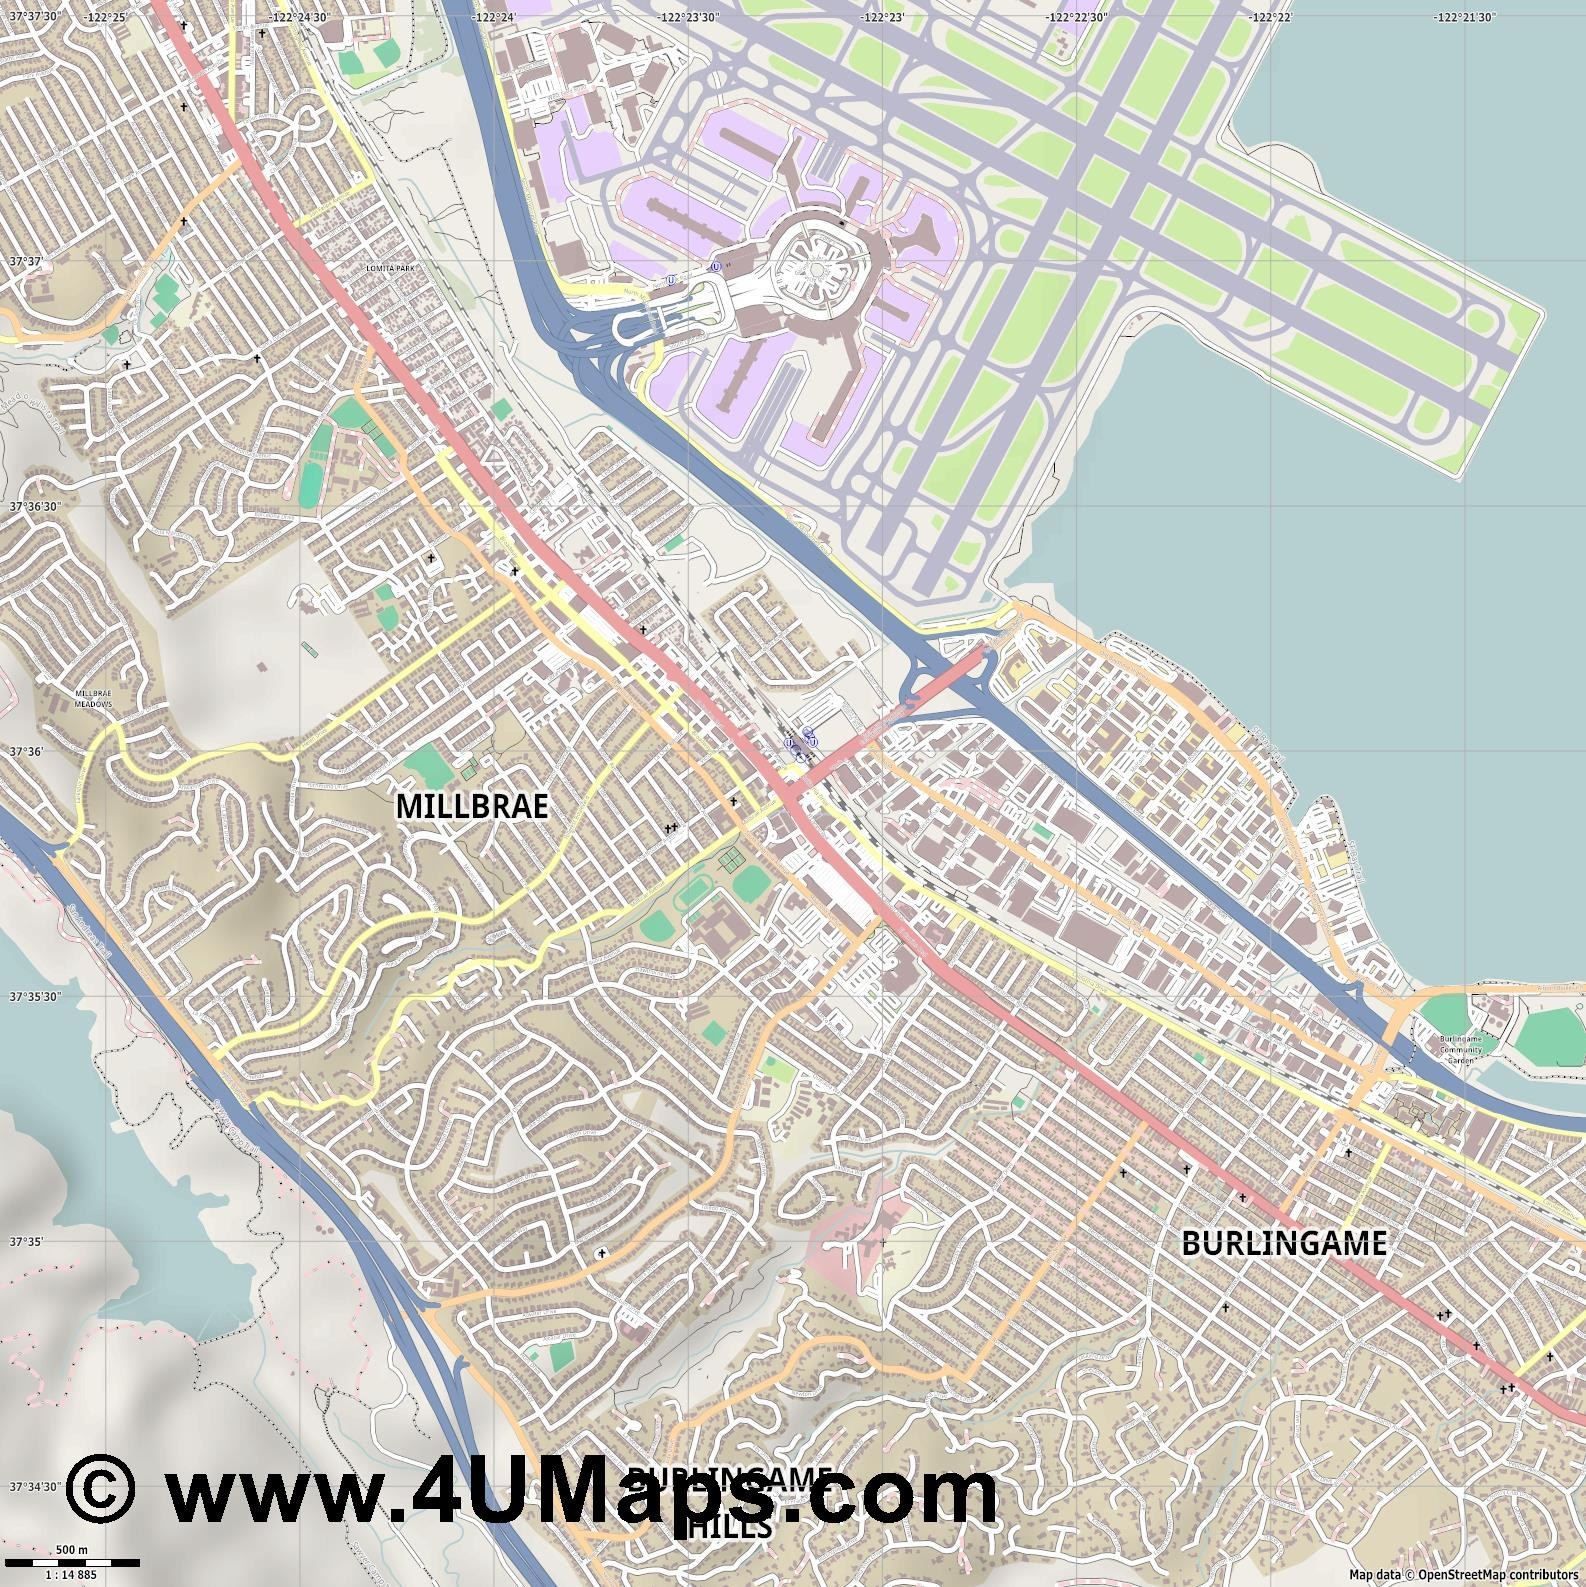 Millbrae  jpg ultra high detail preview vector city map